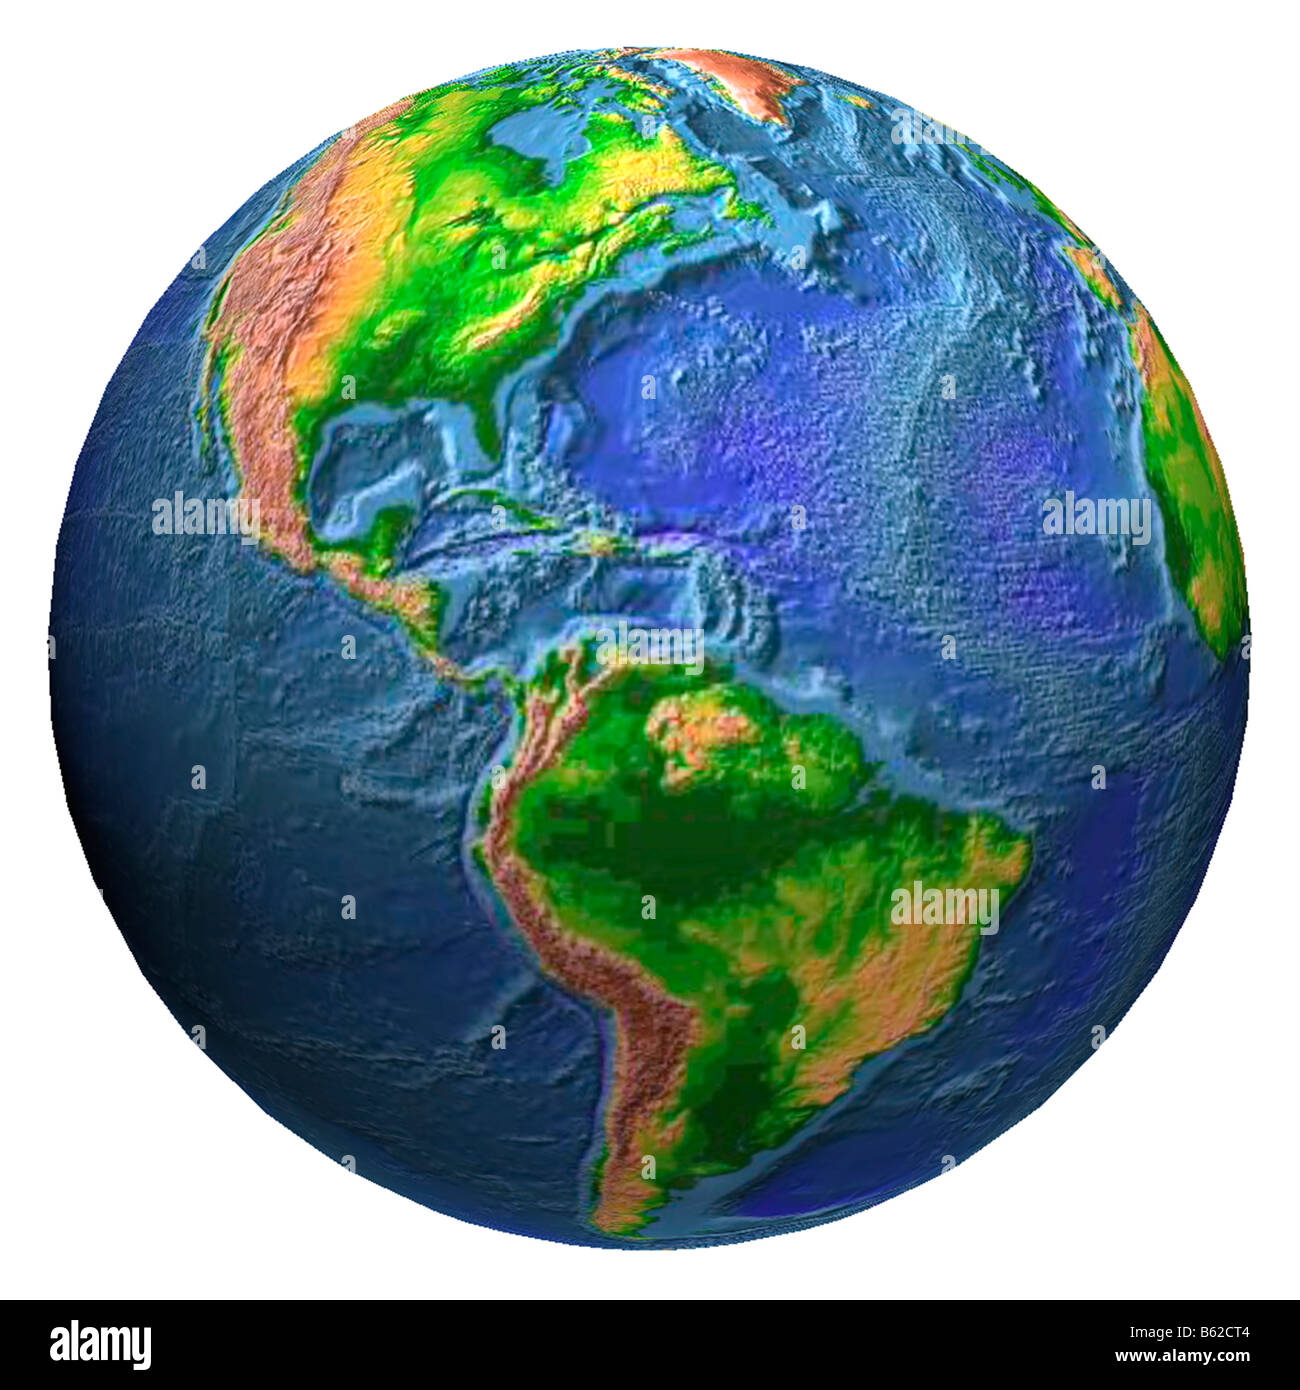 earth globe showing Western Hemisphere in relief - Stock Image